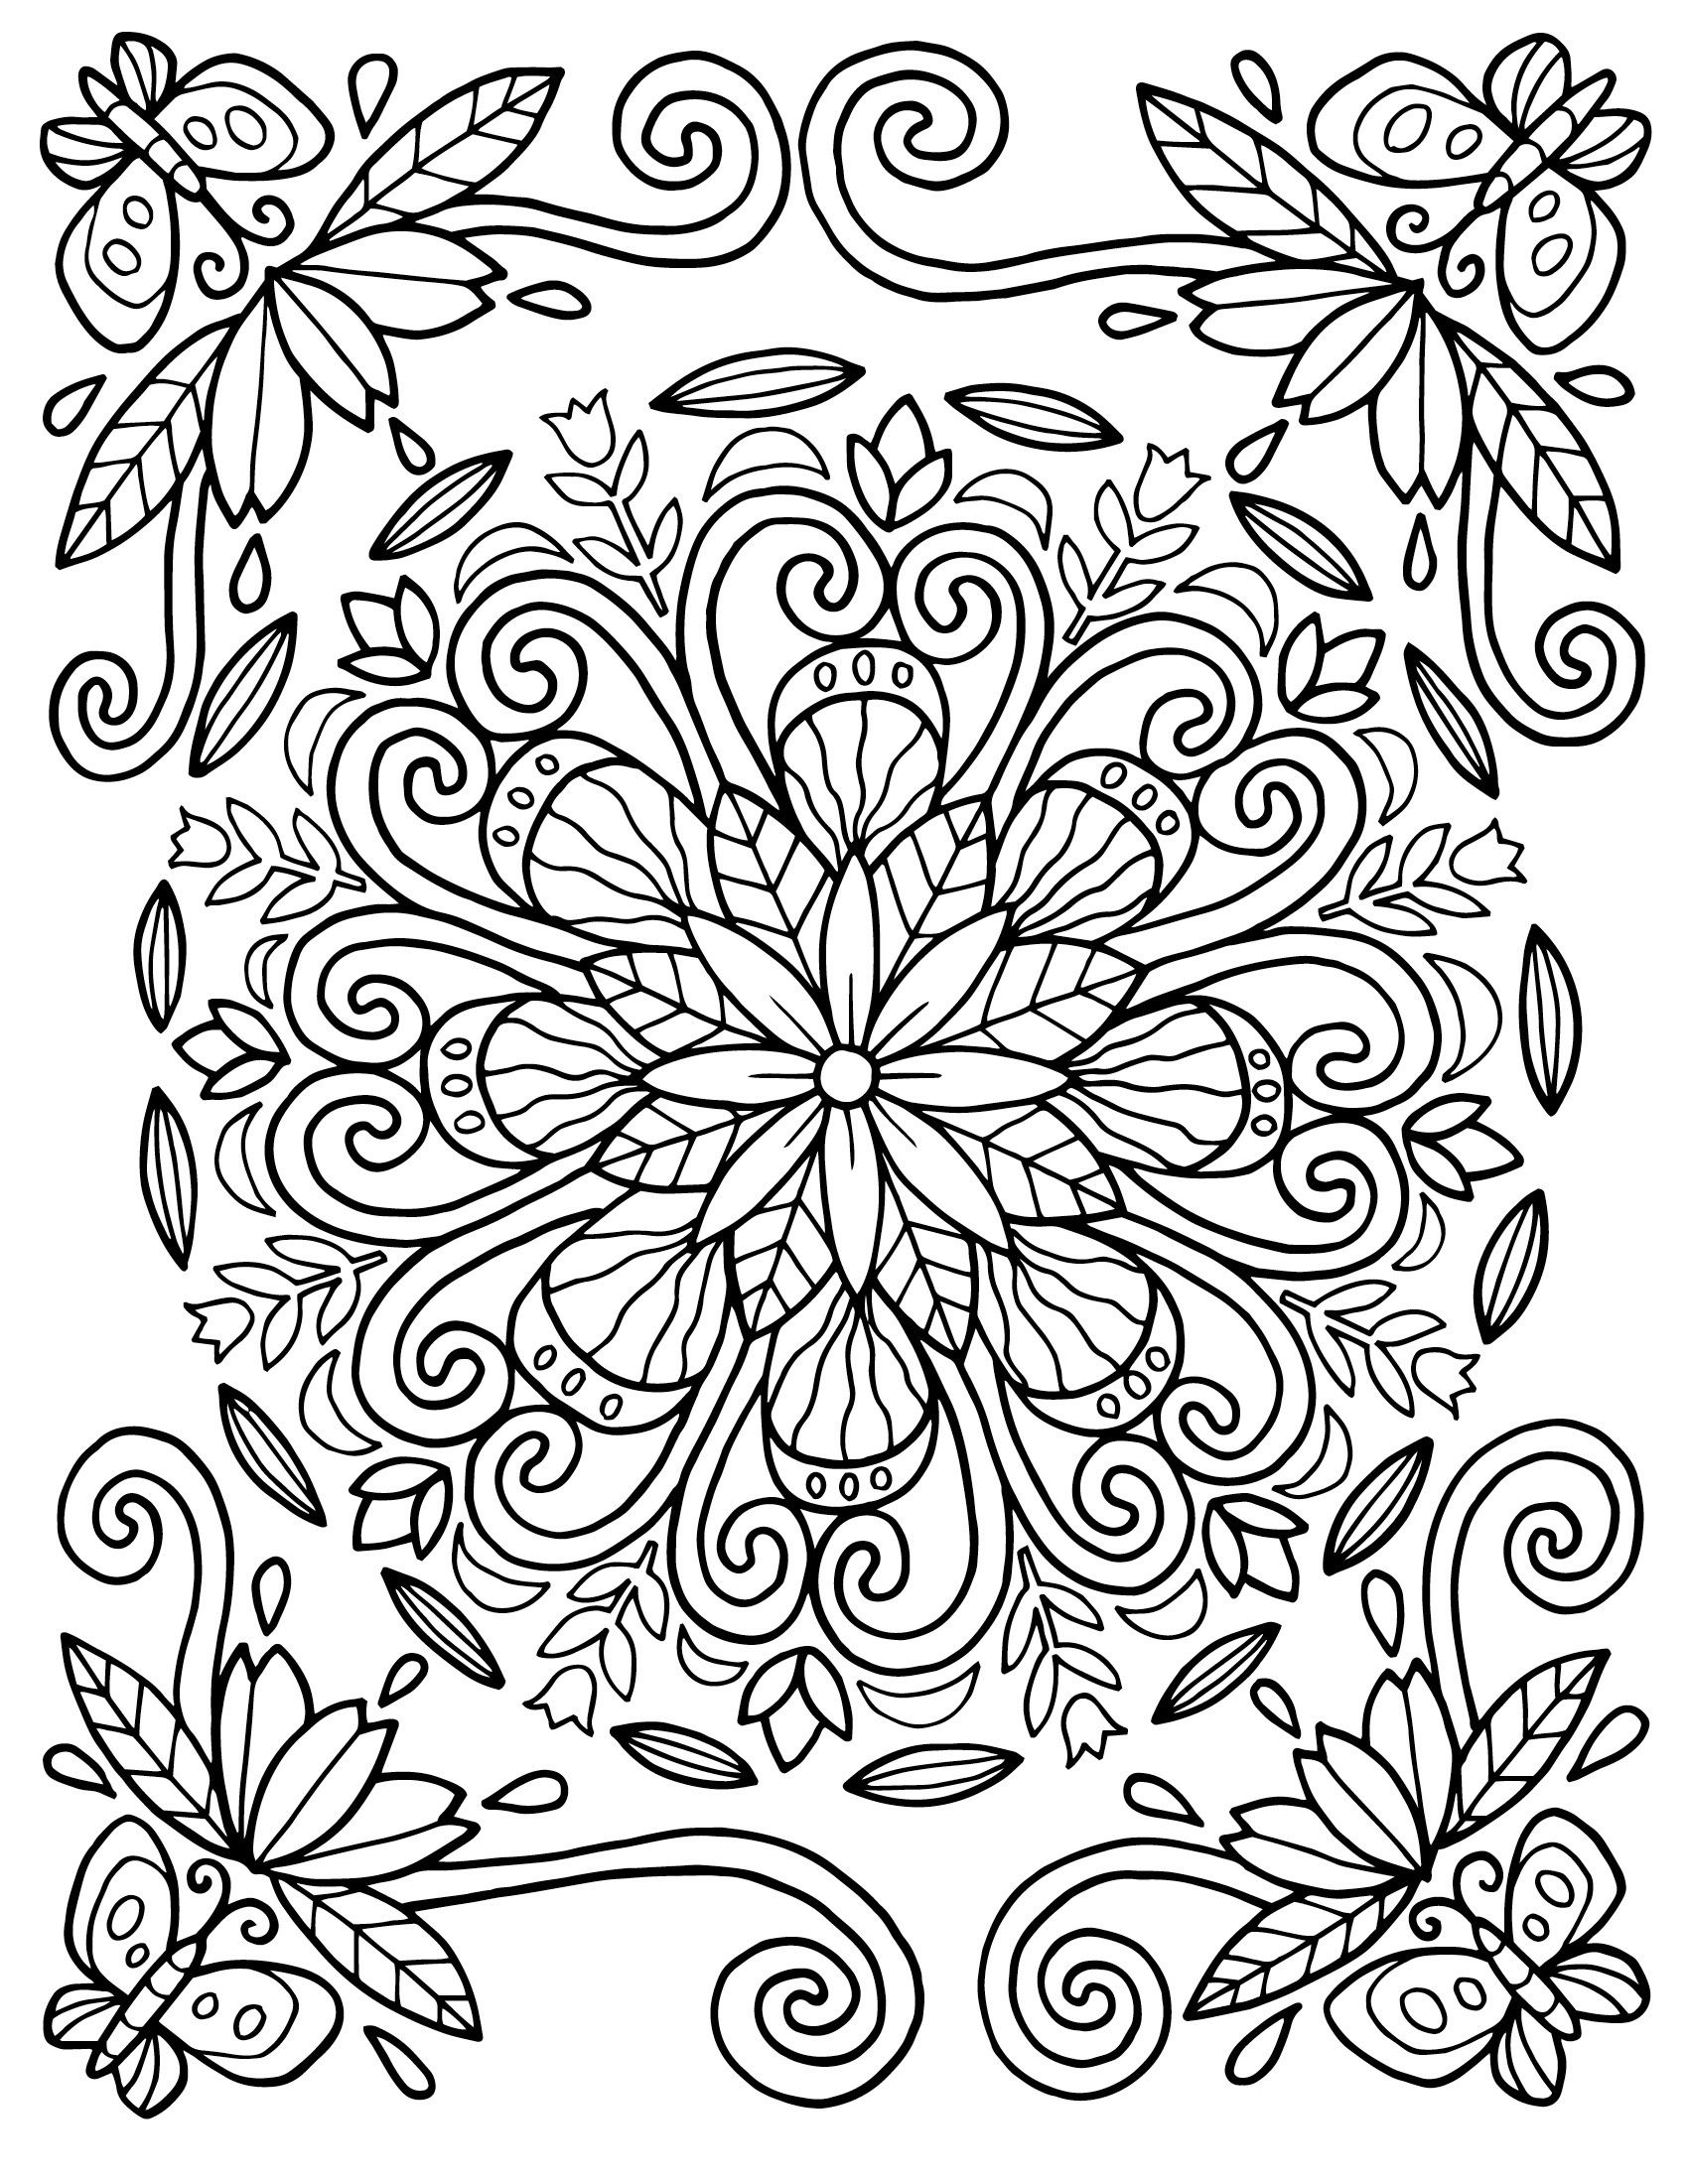 pattern color pages 6 best images of line designs geometry printable pattern pages color